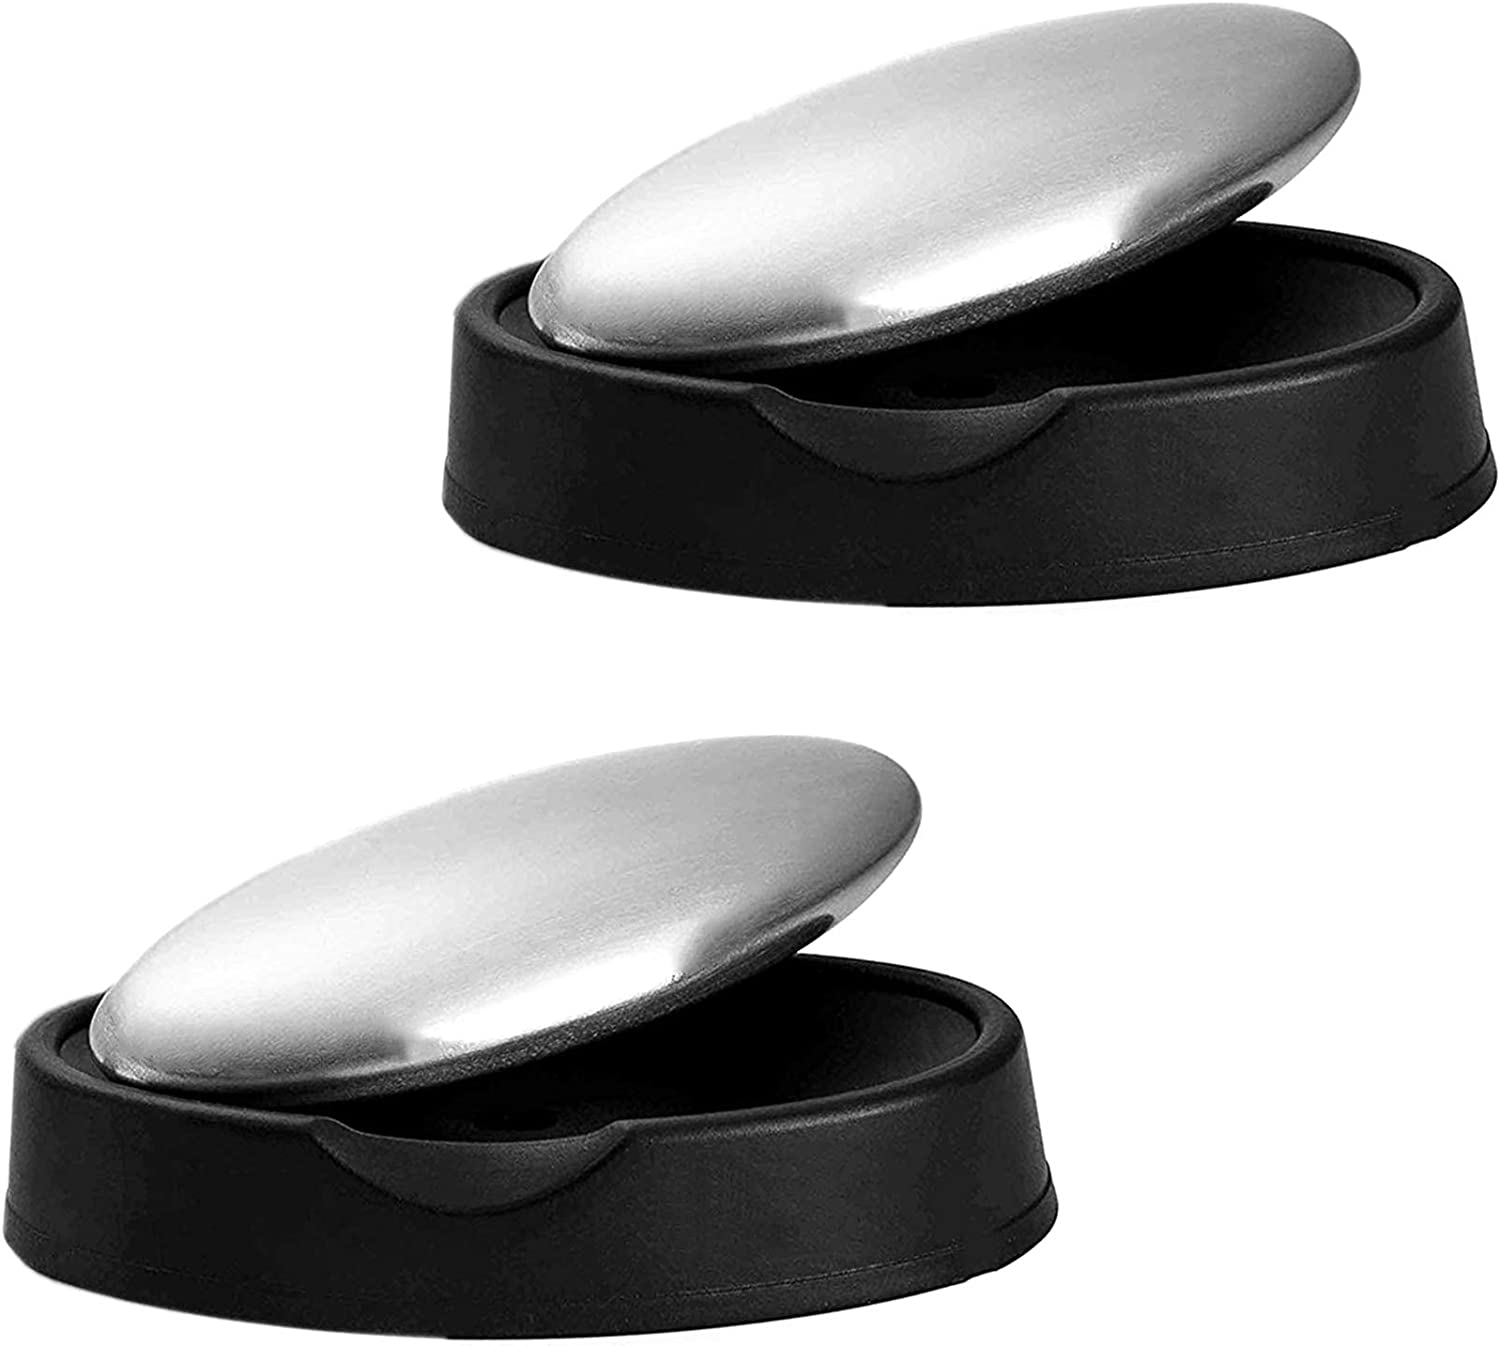 Haluoo 2 Pcs Oval Stainless Steel Soap Magic Kitchen Odor Remover Odor Absorber Smells Deodorize Gadget Tools for Garlic Onion Fish Odor Eliminating Fits Refrigerator Kitchen Bathroom